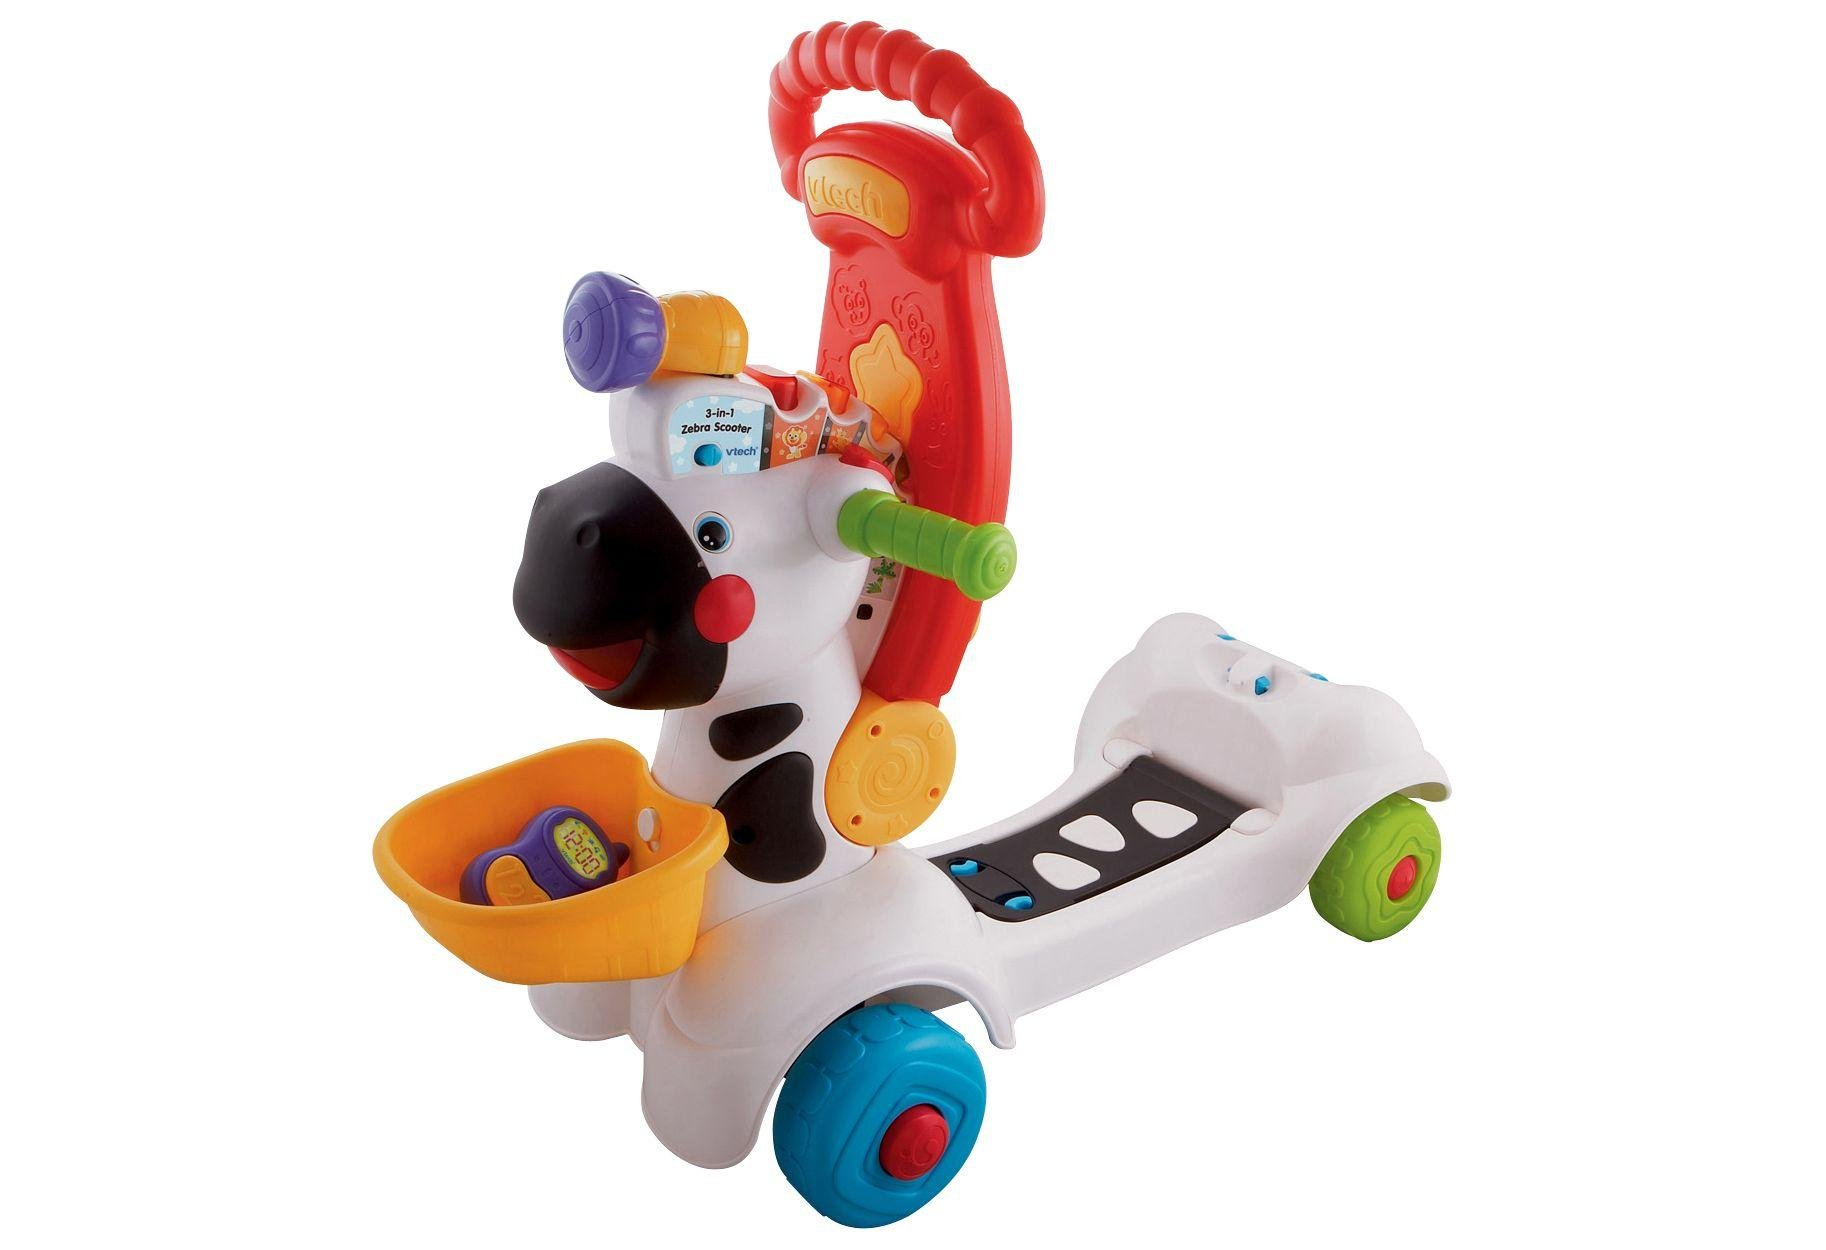 Image of VTech Baby 3-in-1 Zebra Scooter